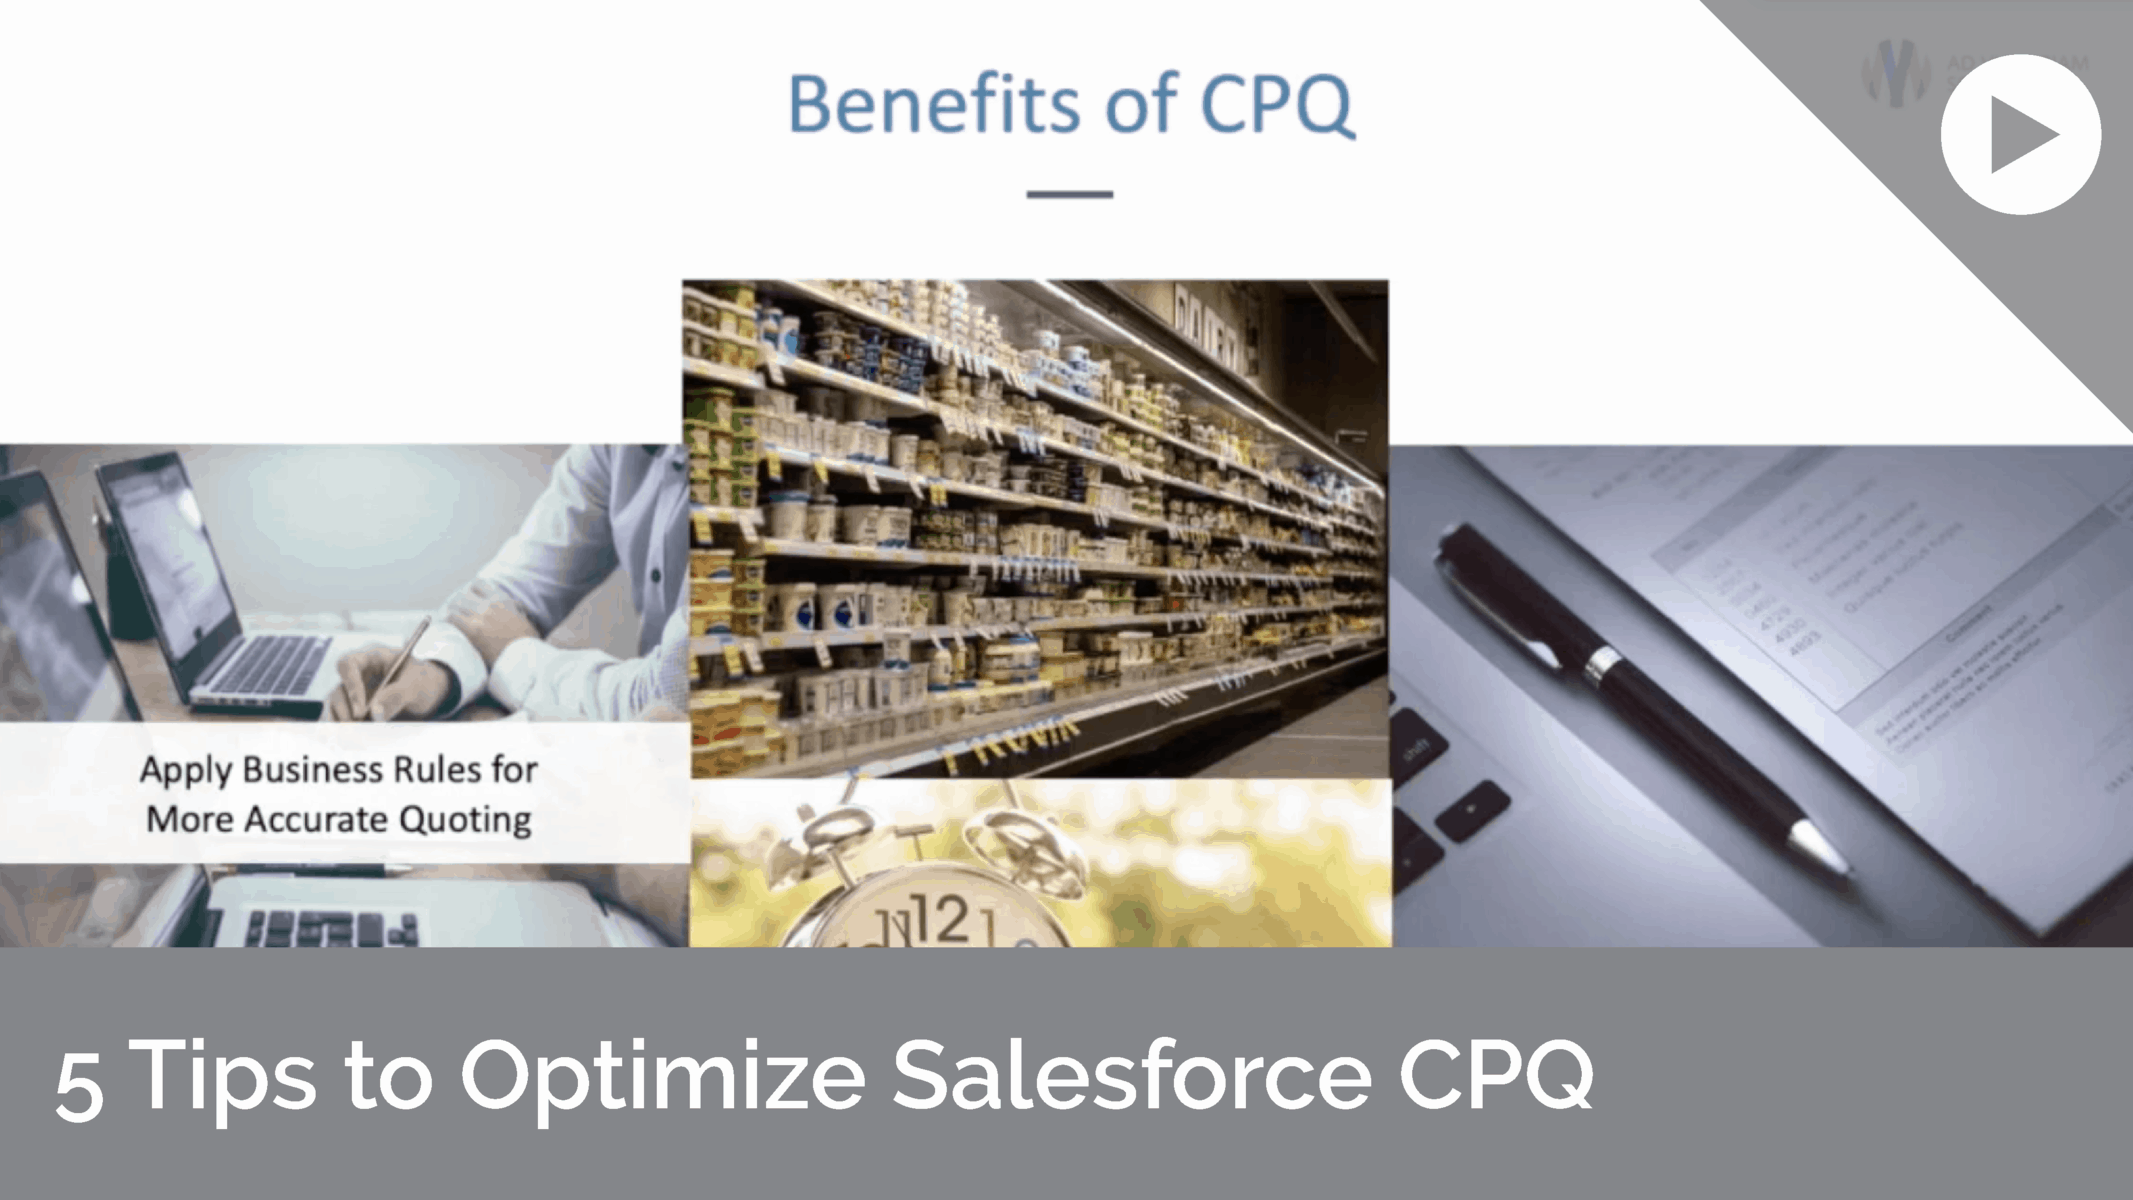 5 Tips to Optimize Salesforce CPQ